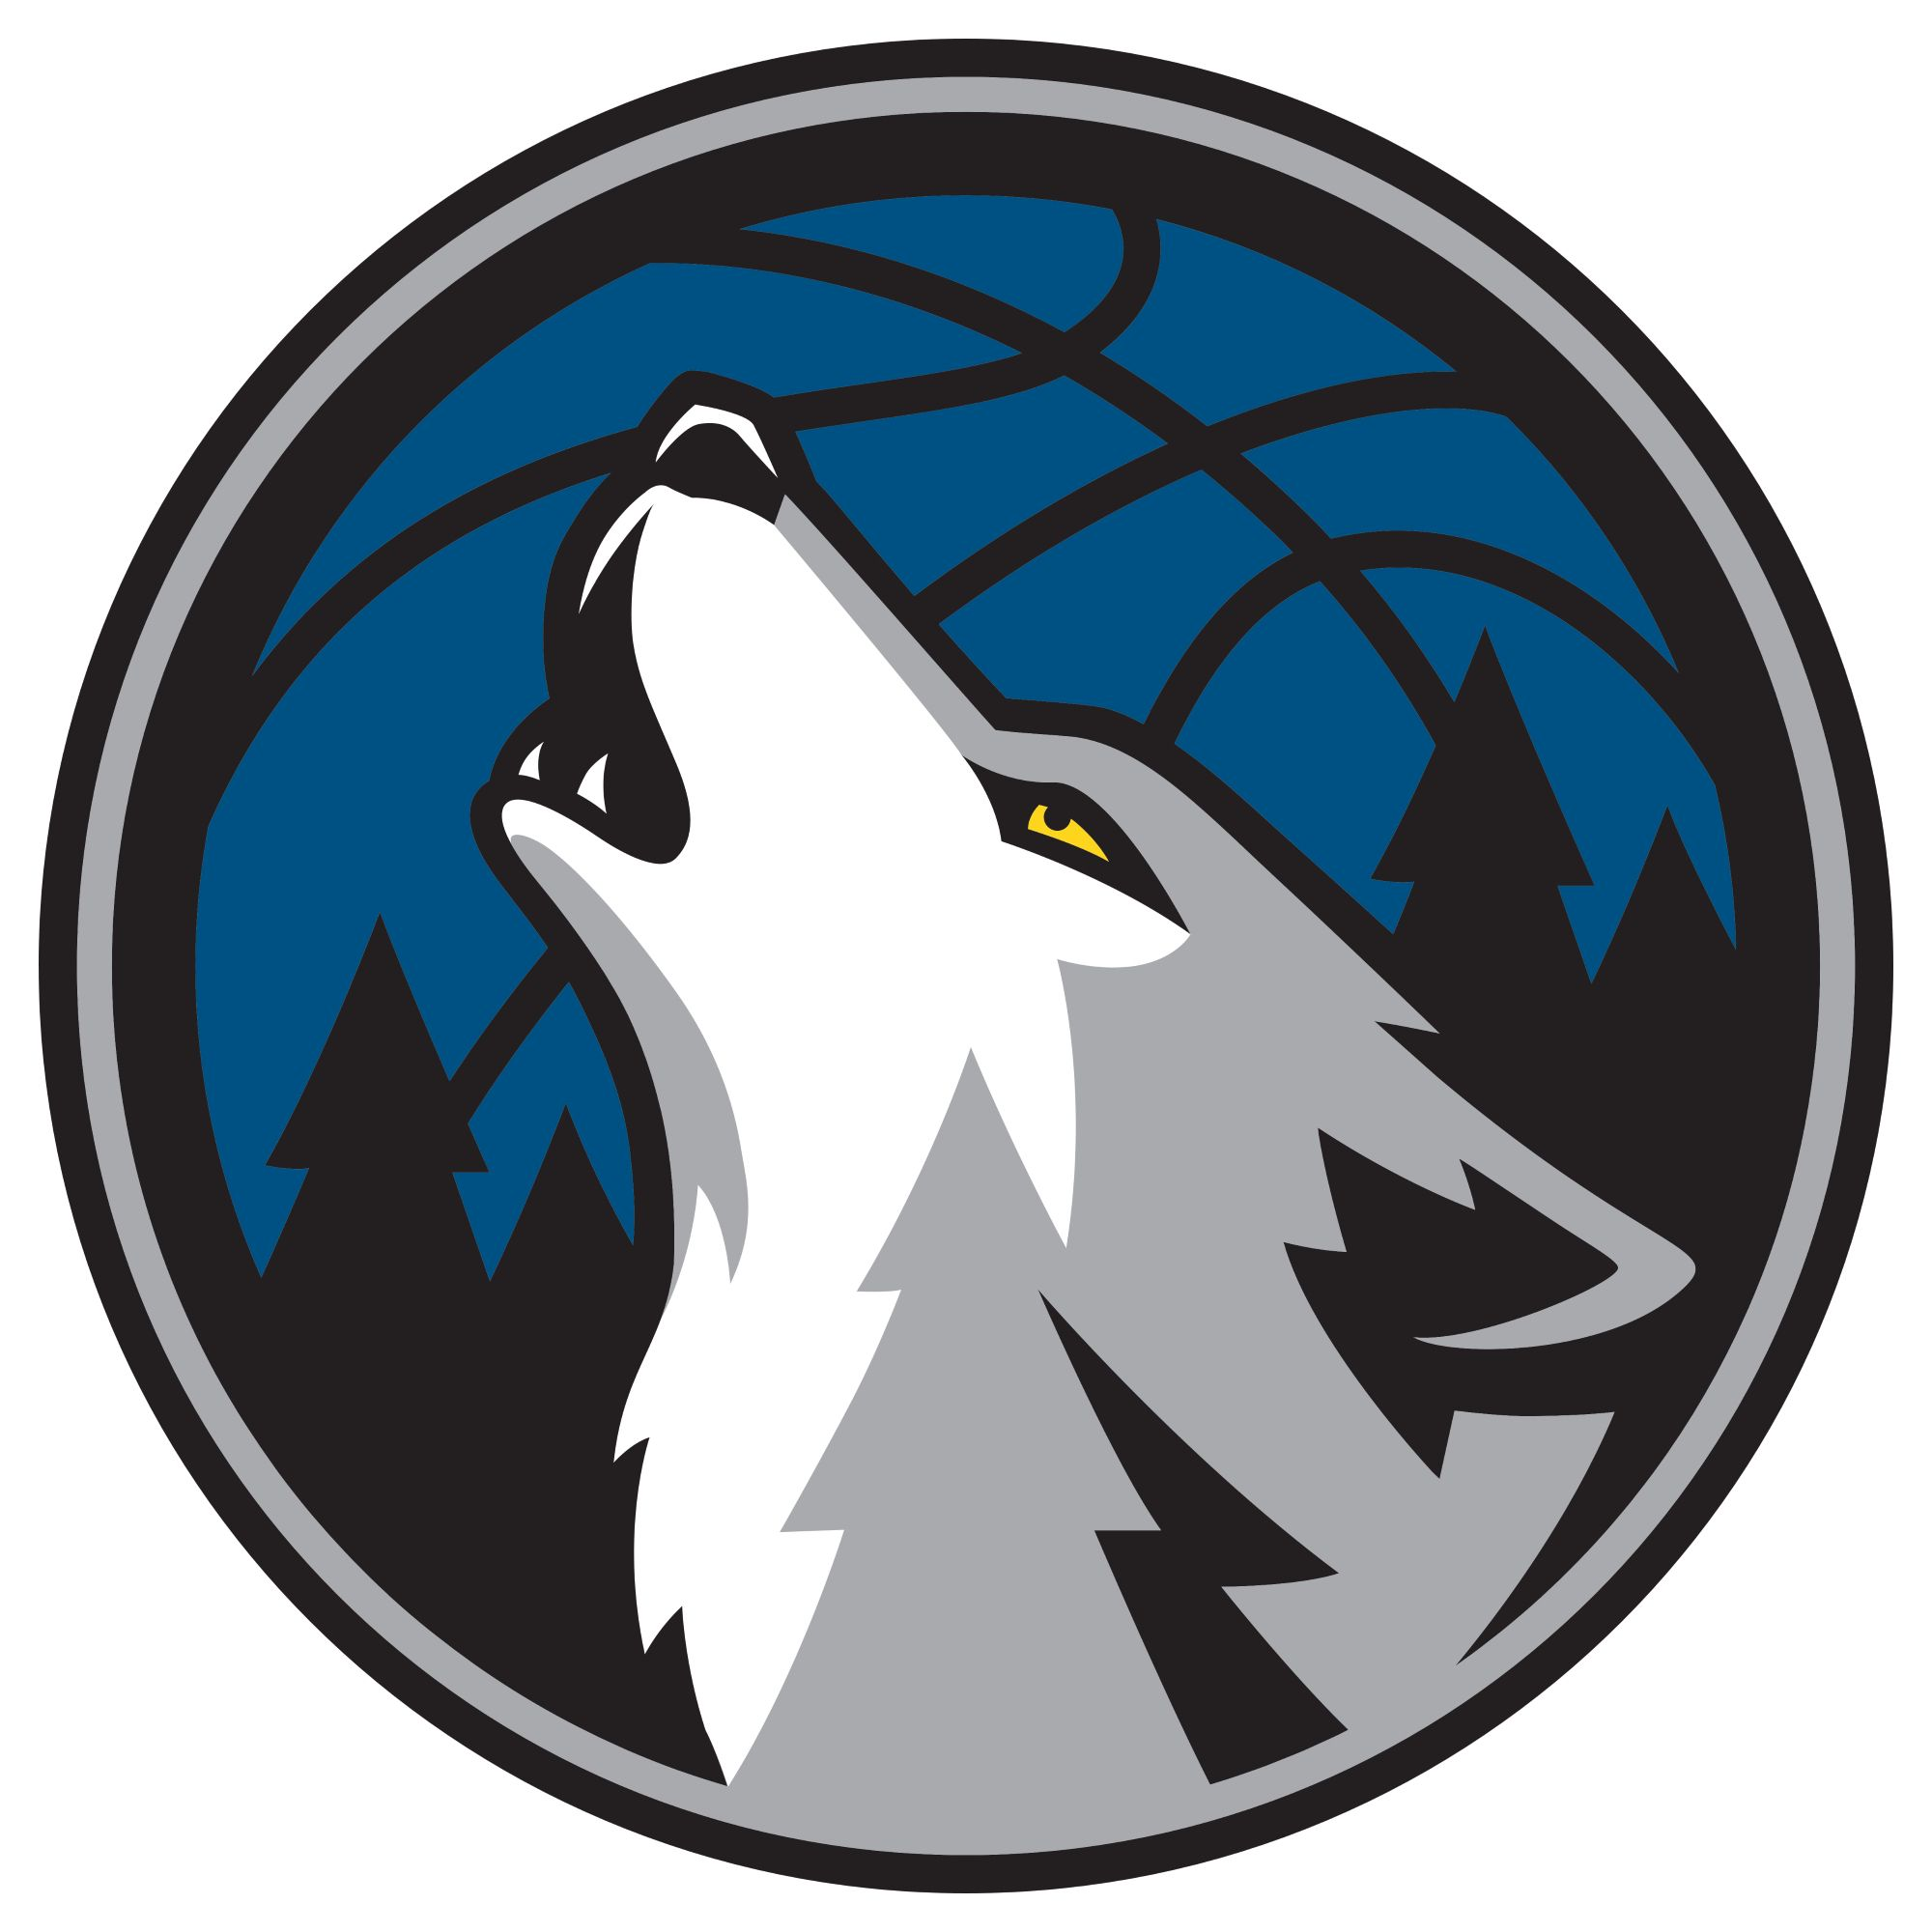 Minnesota timberwolves logo clipart graphic black and white Pin by BLACK Program on Football: Timberwolves | Minnesota ... graphic black and white